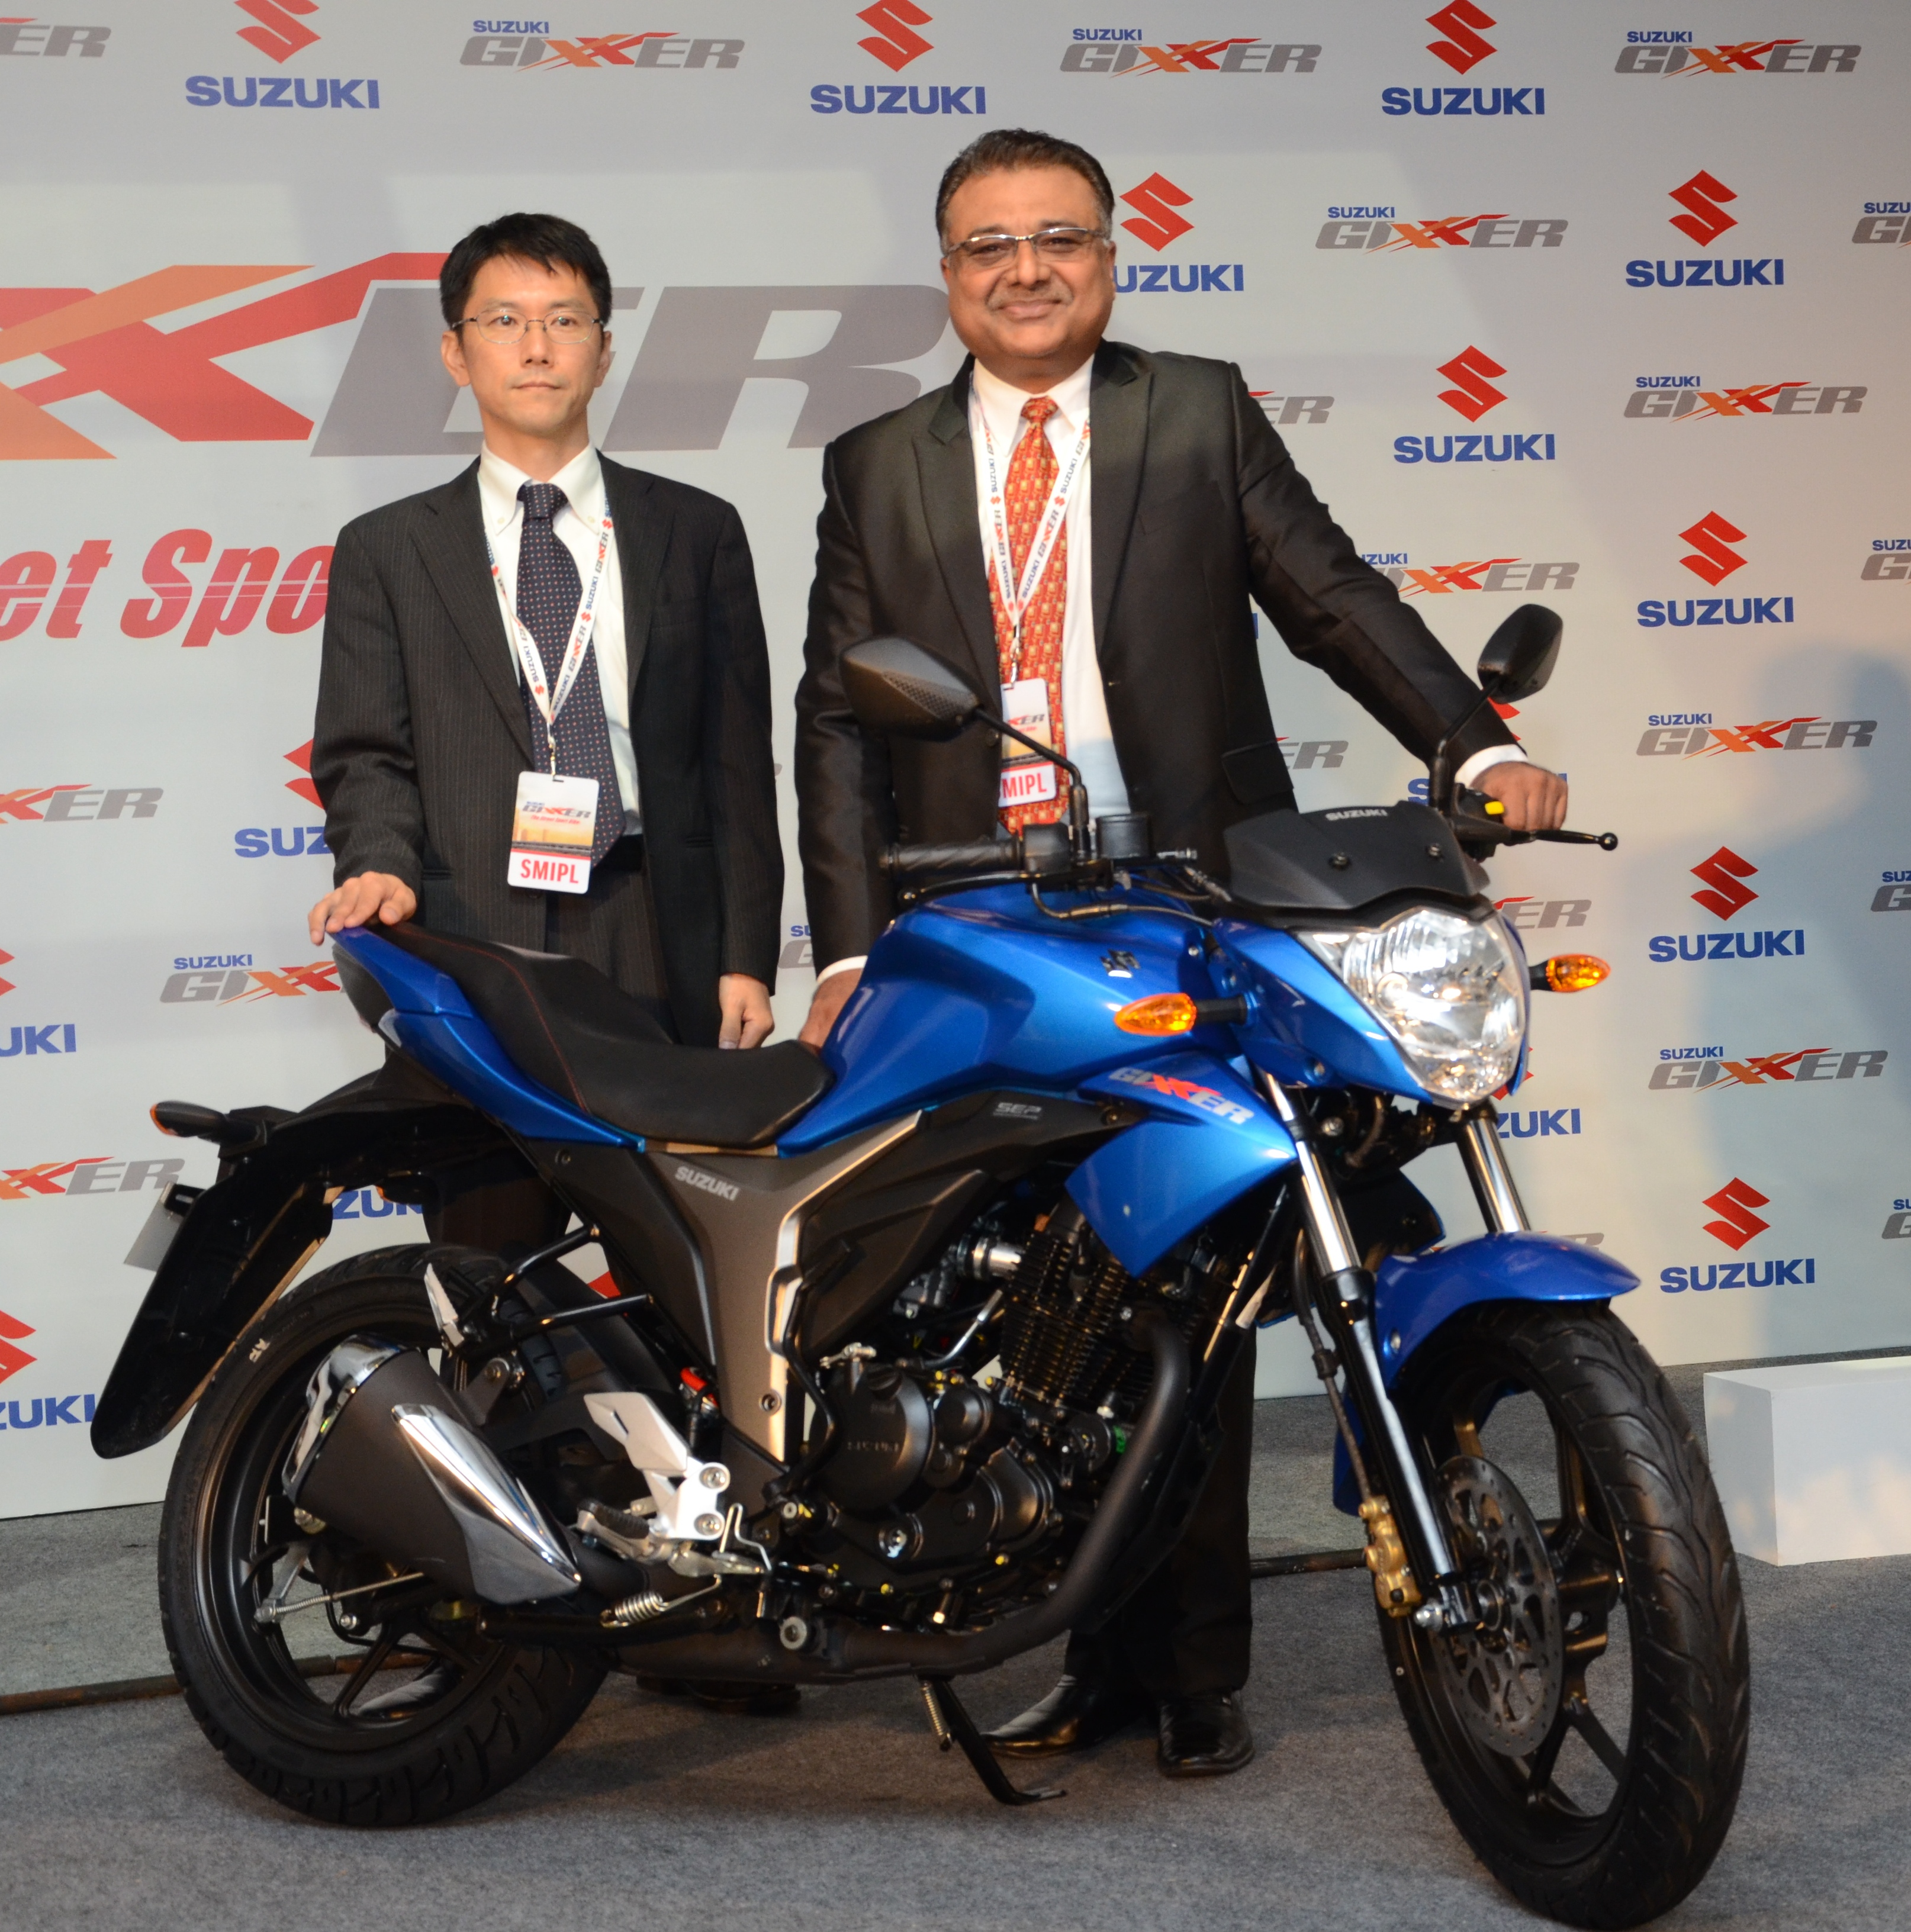 155cc Suzuki Gixxer launched at Rs. 72,199